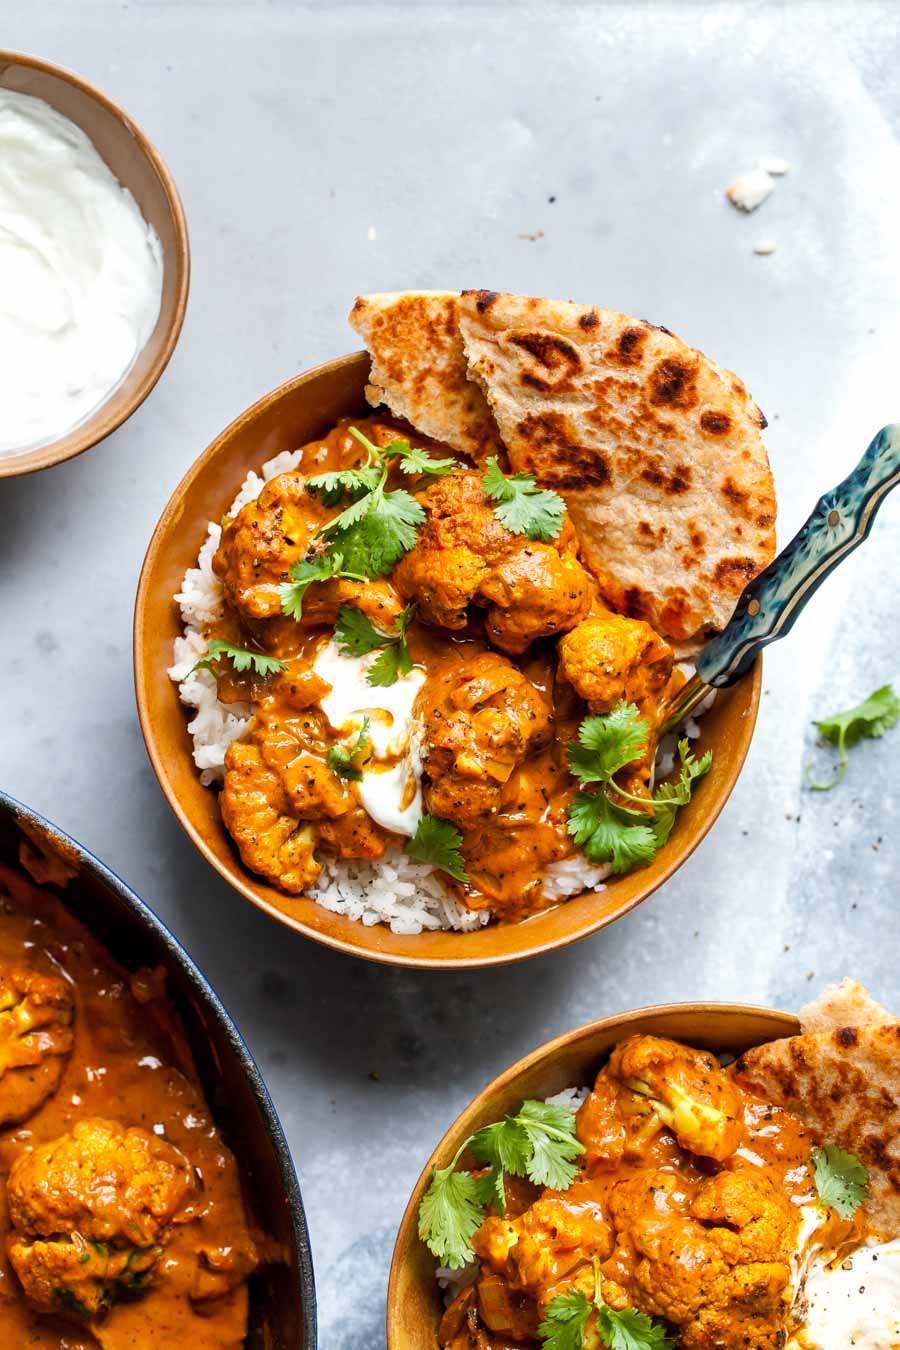 A vegetarian version of Butter Chicken using cauliflower